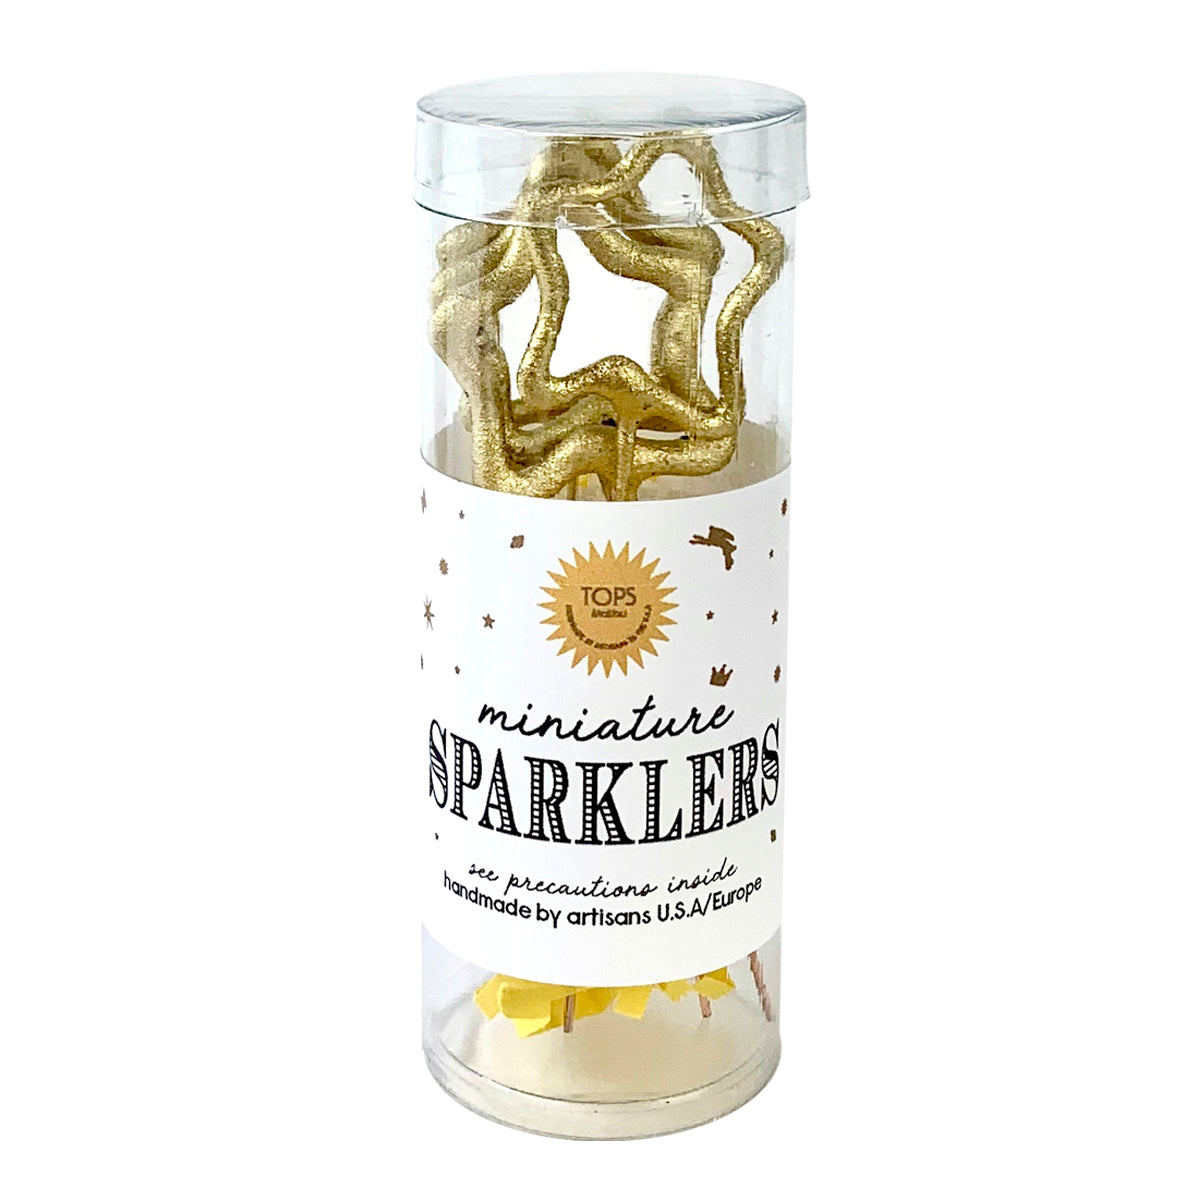 Mini Gold Sparklers Star